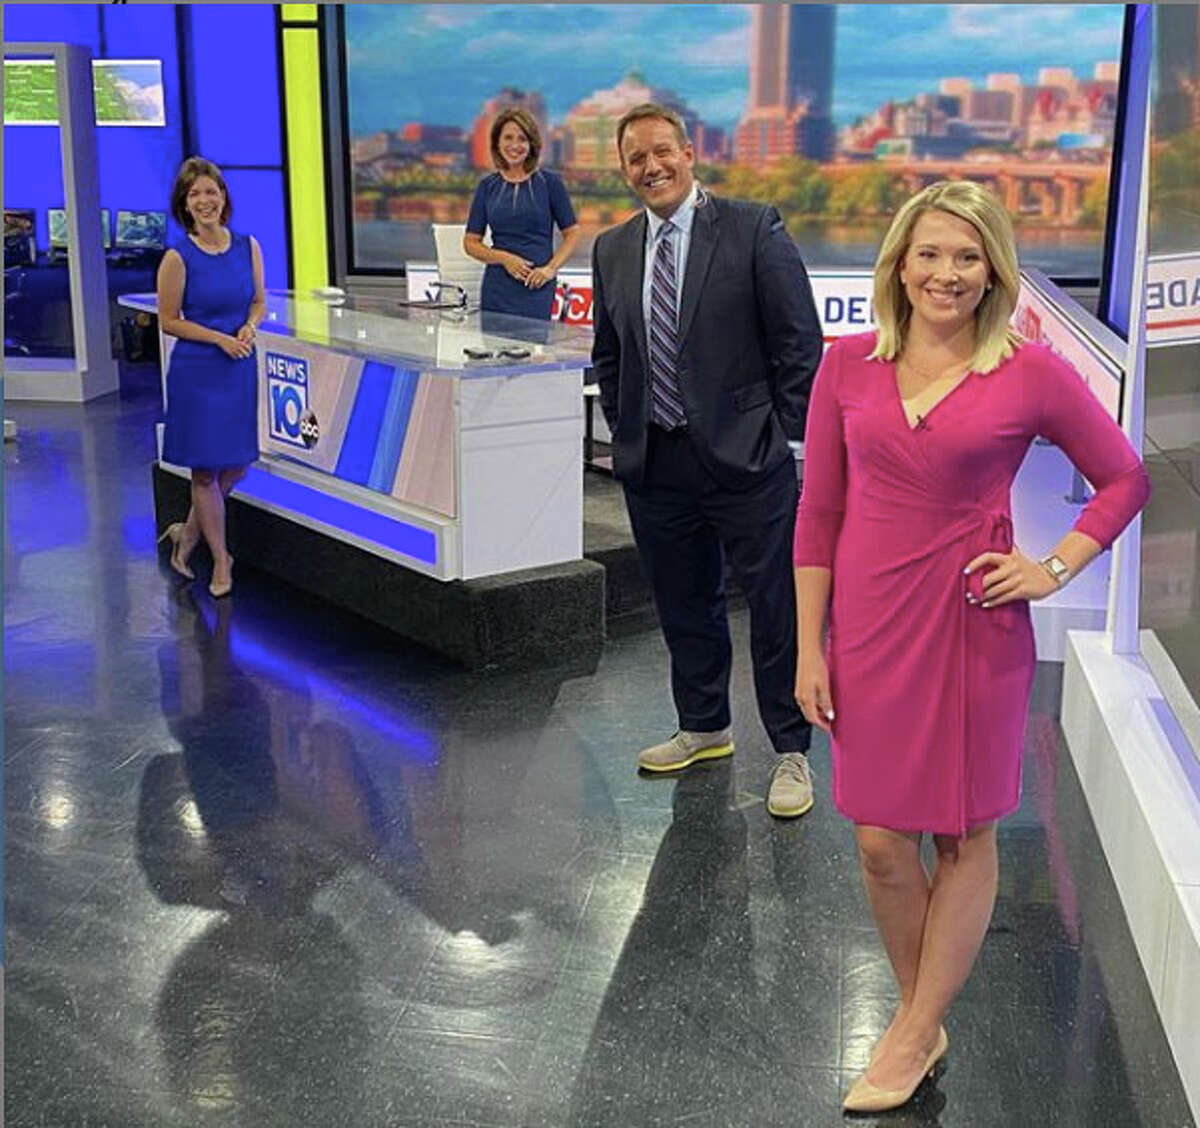 Mary Wilson has been named weekday morning anchor at NEWS10 ABC/FOX 23, filling the spot vacated by Nicol Lally. Lally left WTEN earlier this summer after more than a decade with the station.